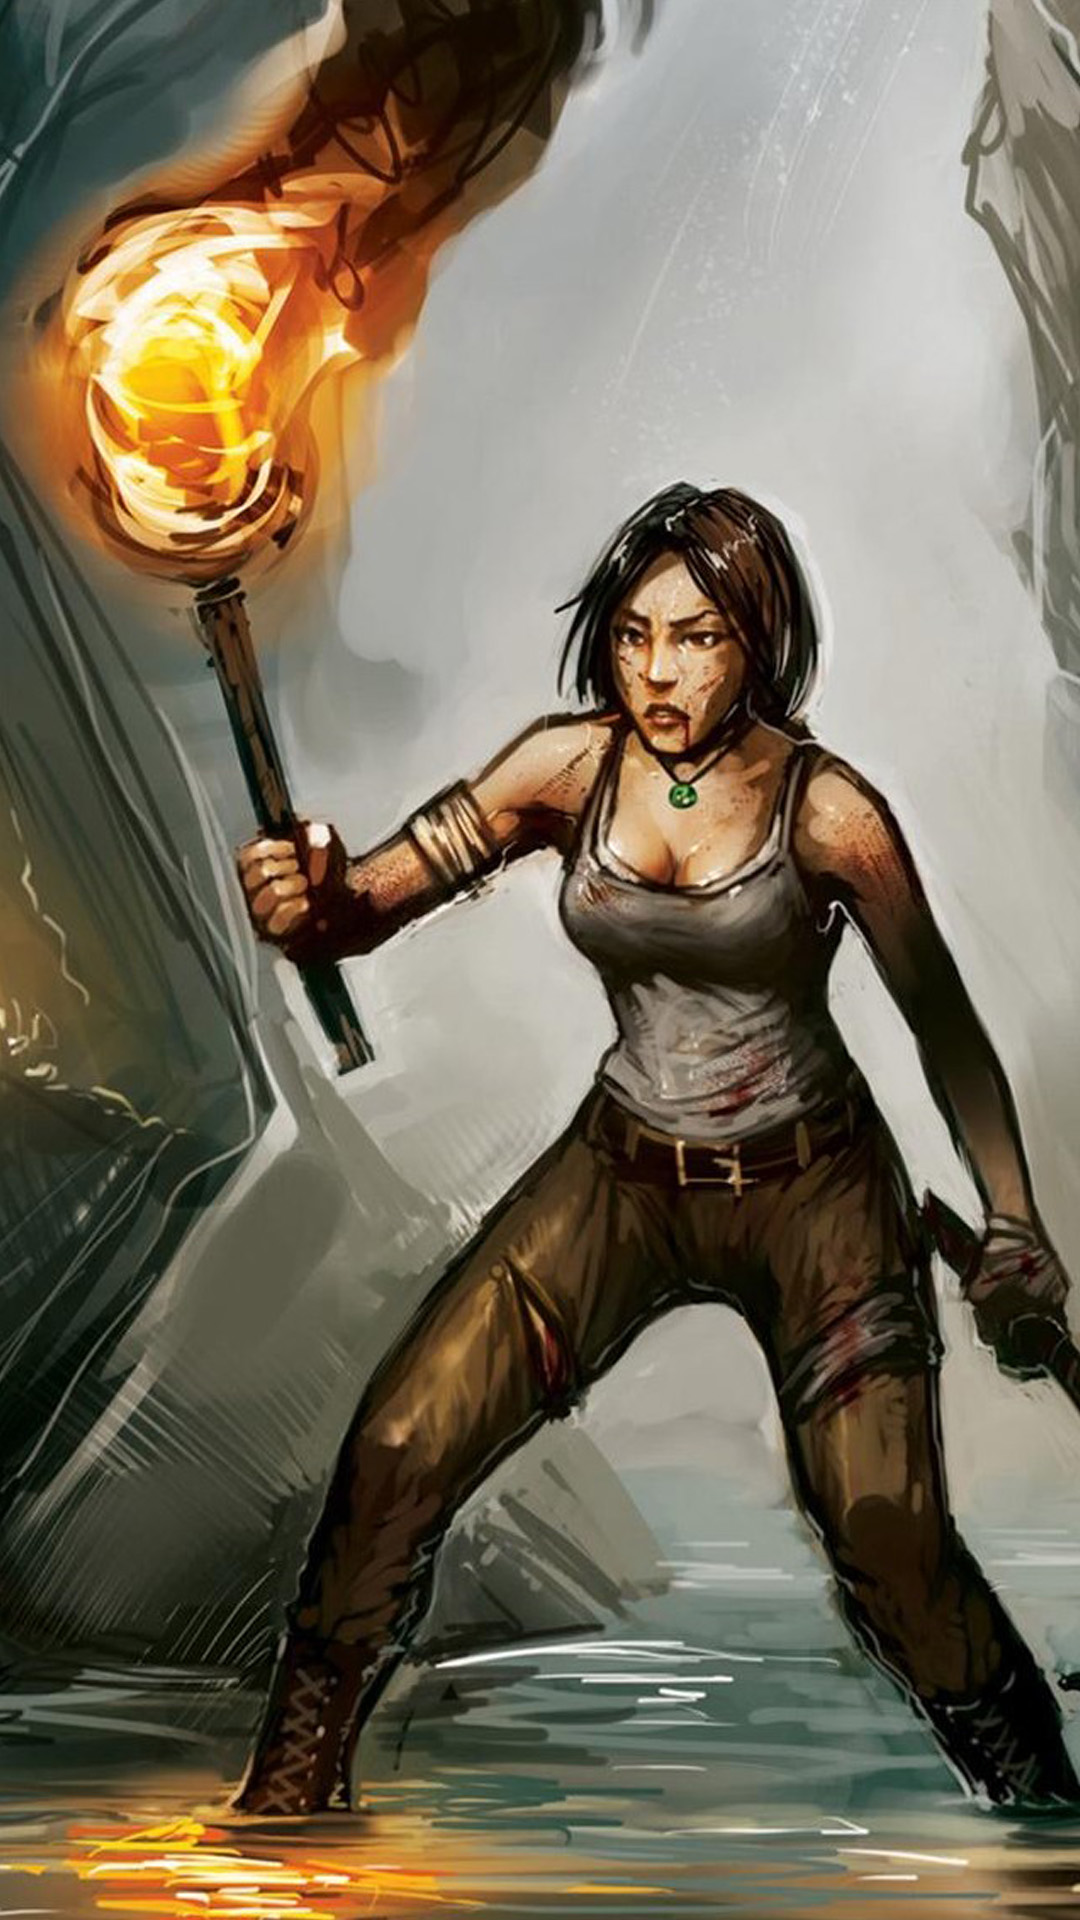 Lara Croft Art Anime Android wallpaper